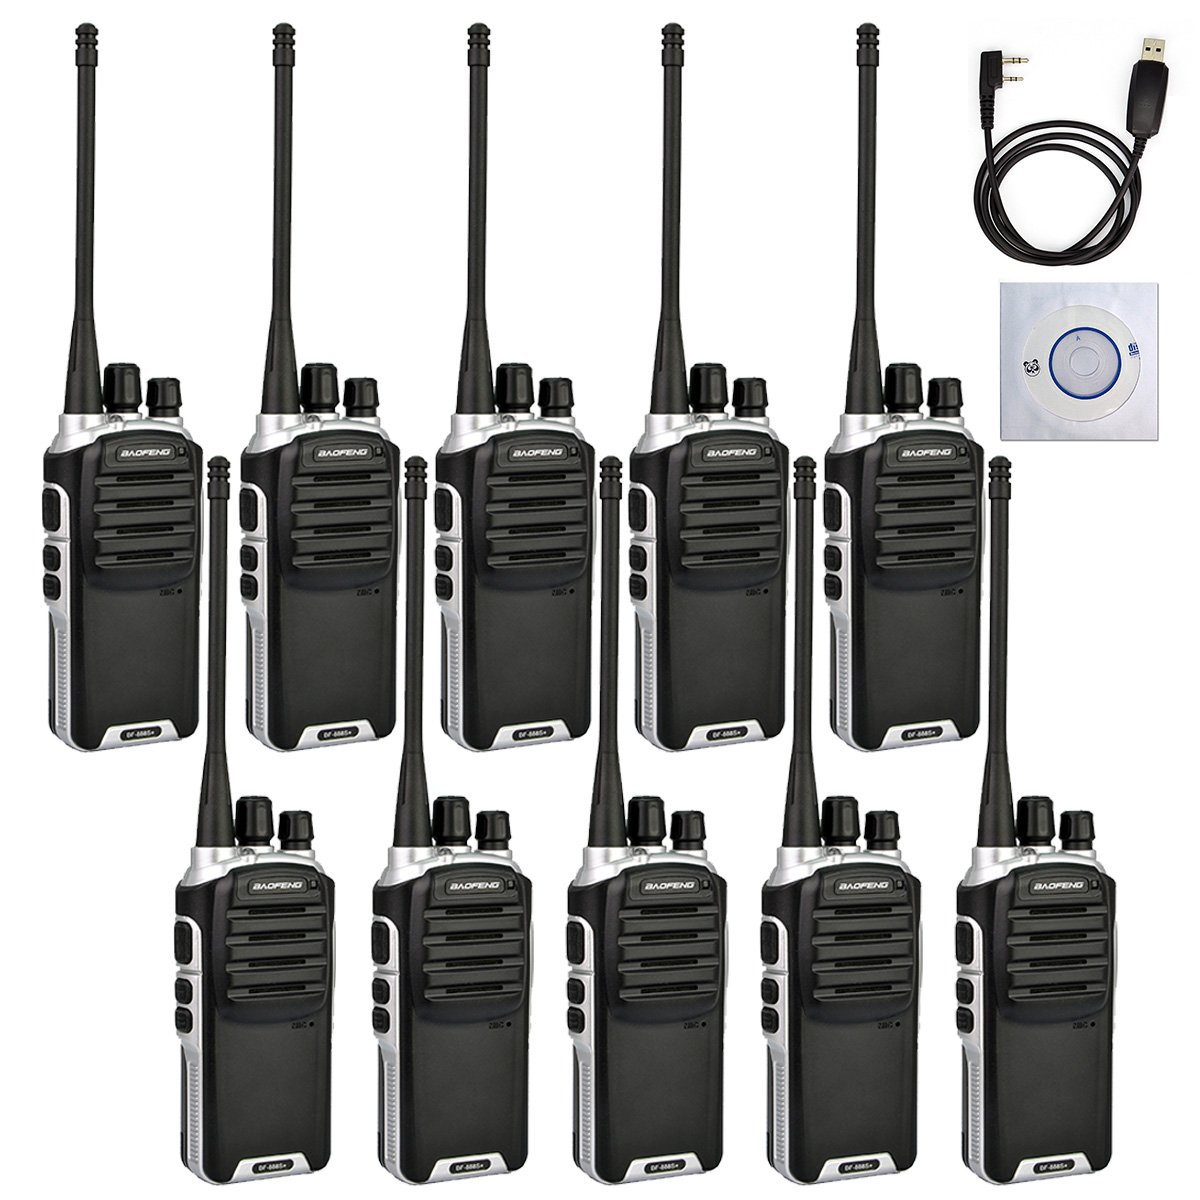 Baofeng BF-888S Plus UHF Walkie Talkies Upgrade Version of BF-888S Two-Way Radio for Hiking Camping Trolling(10 Packs With 1 Free Programming Cable)